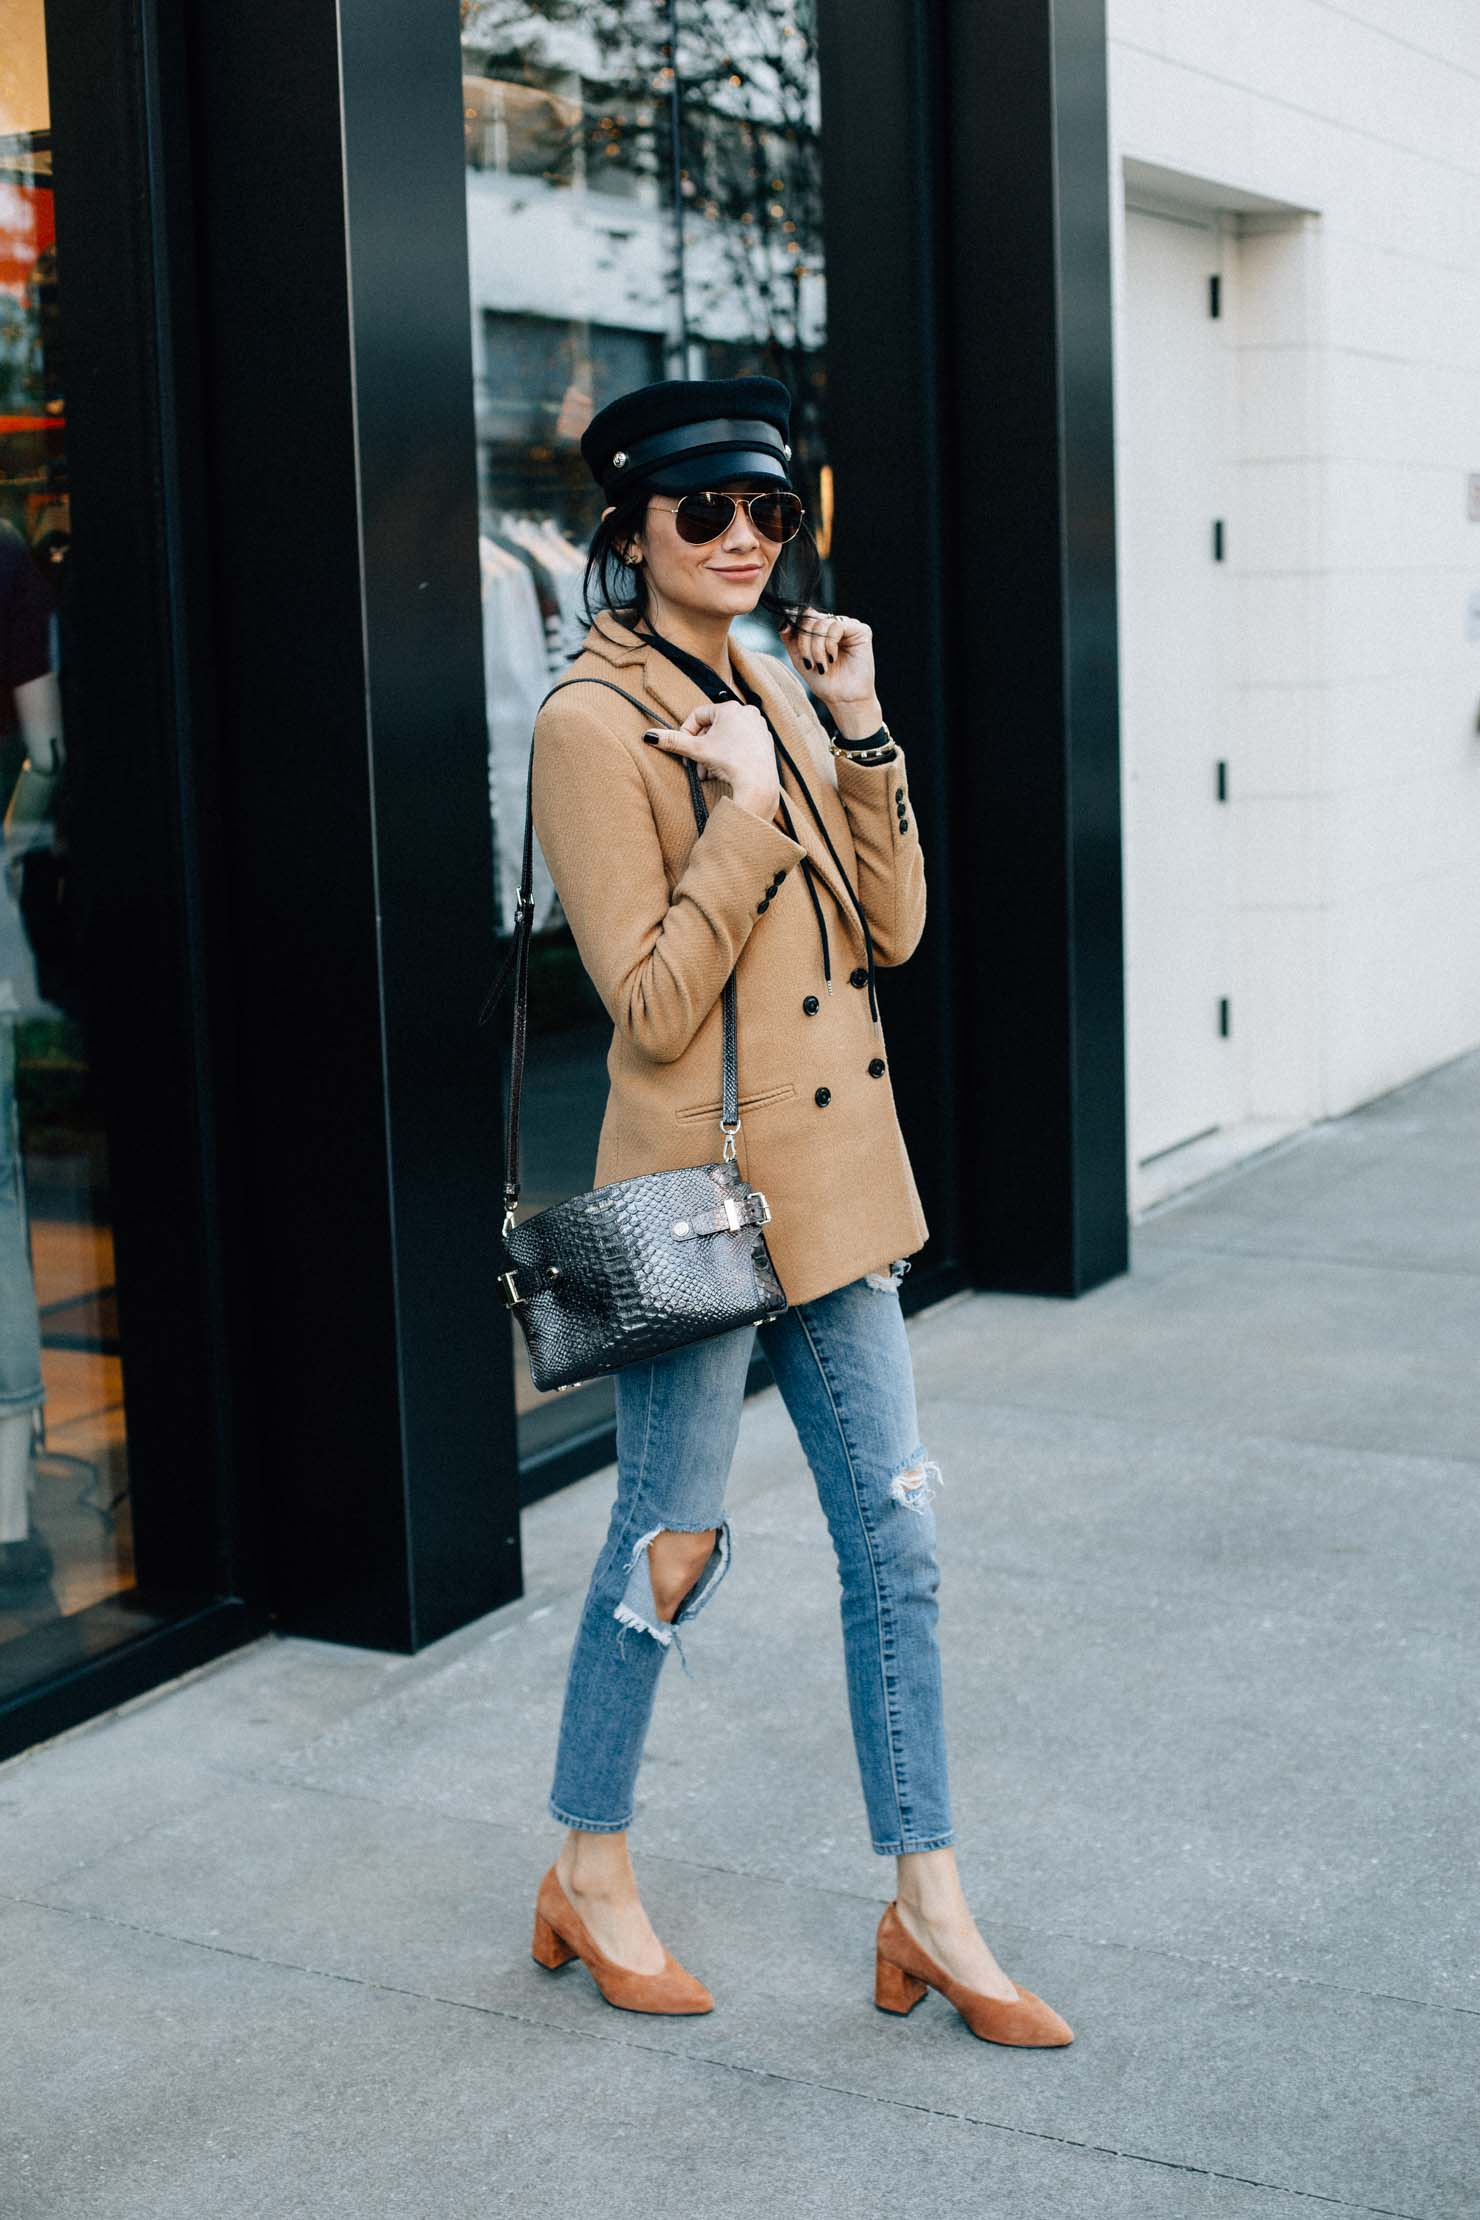 Lilly Beltran of Daily Craving wearing chic fall & winter outfits with a wool coat, suede pumps and bake boy cap